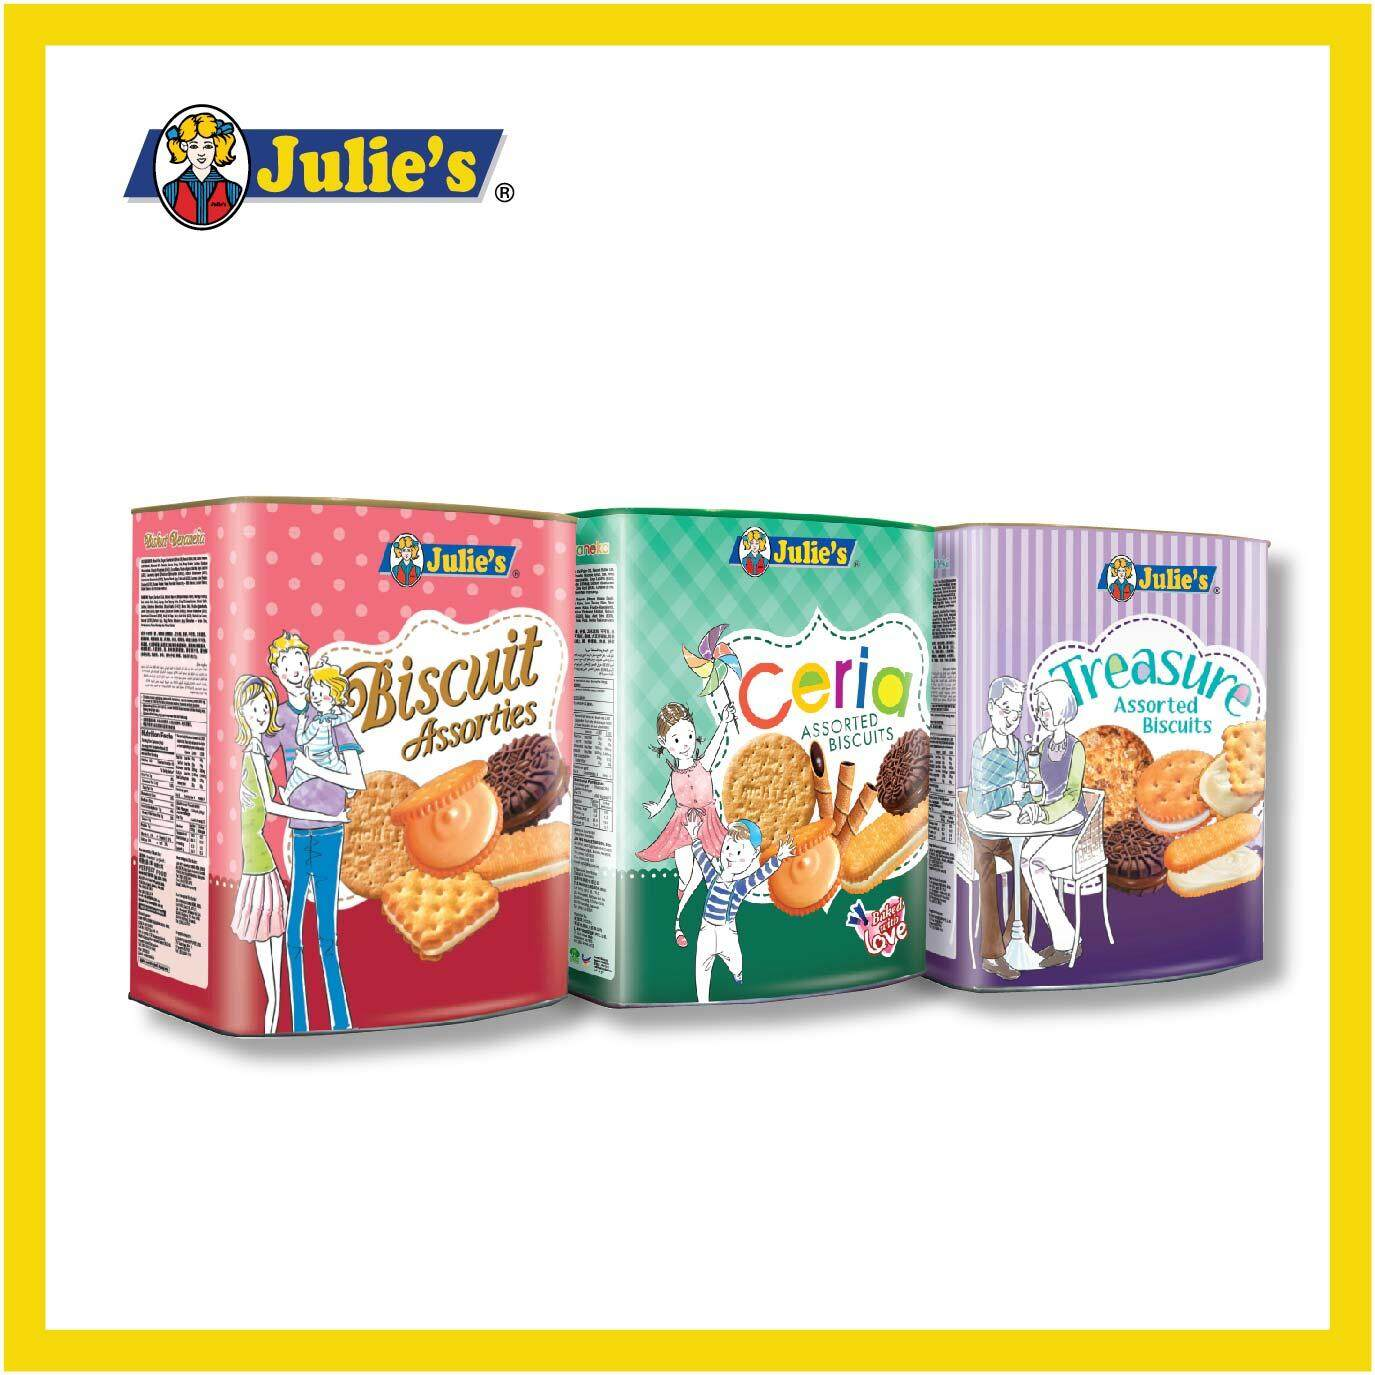 Julie's Assorted Biscuits Combo Tin + Free 1 Water Tumbler